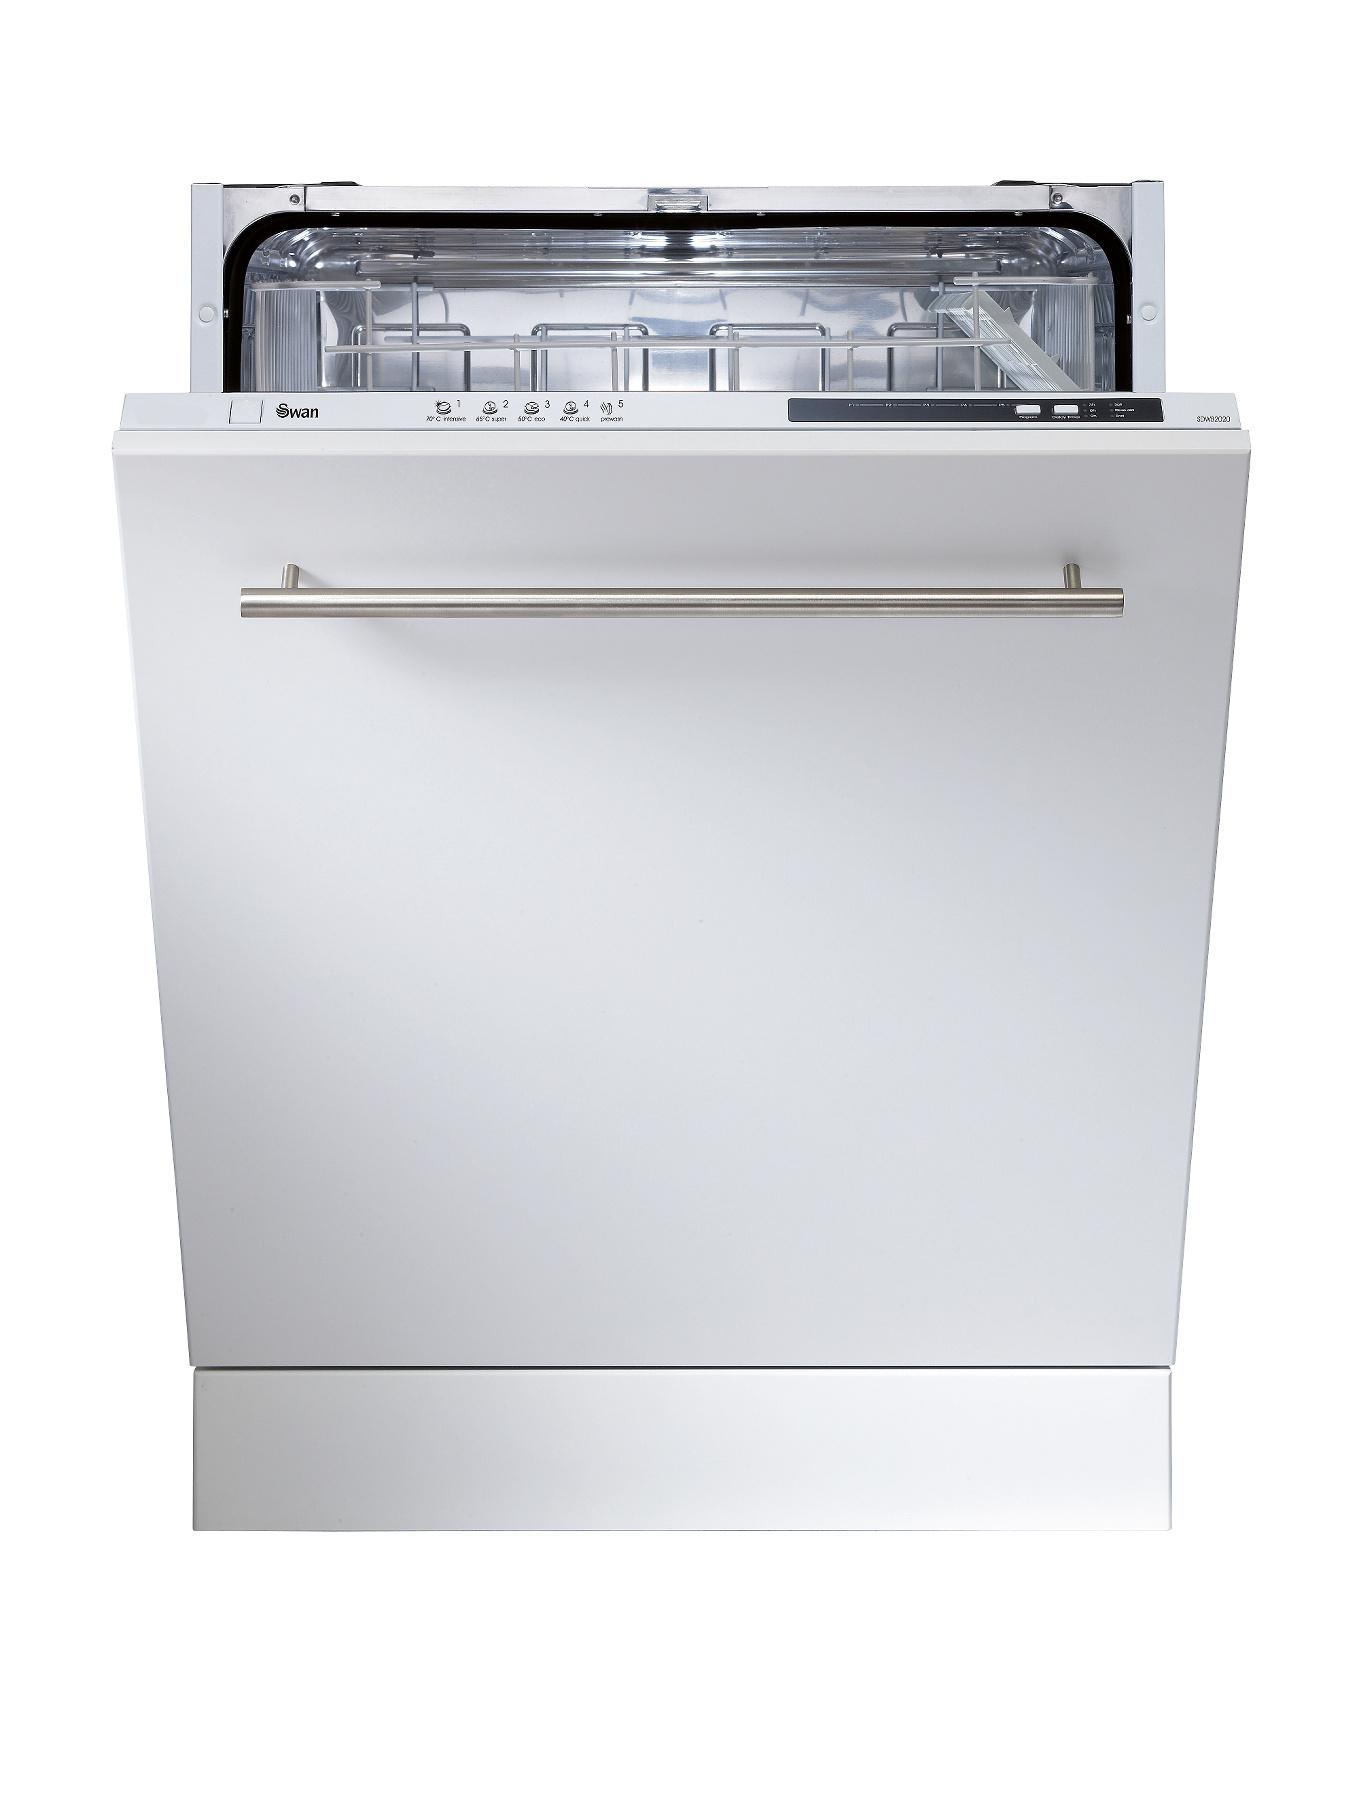 SDWB2020 12 Place Full Size Integrated Dishwasher - White at Littlewoods